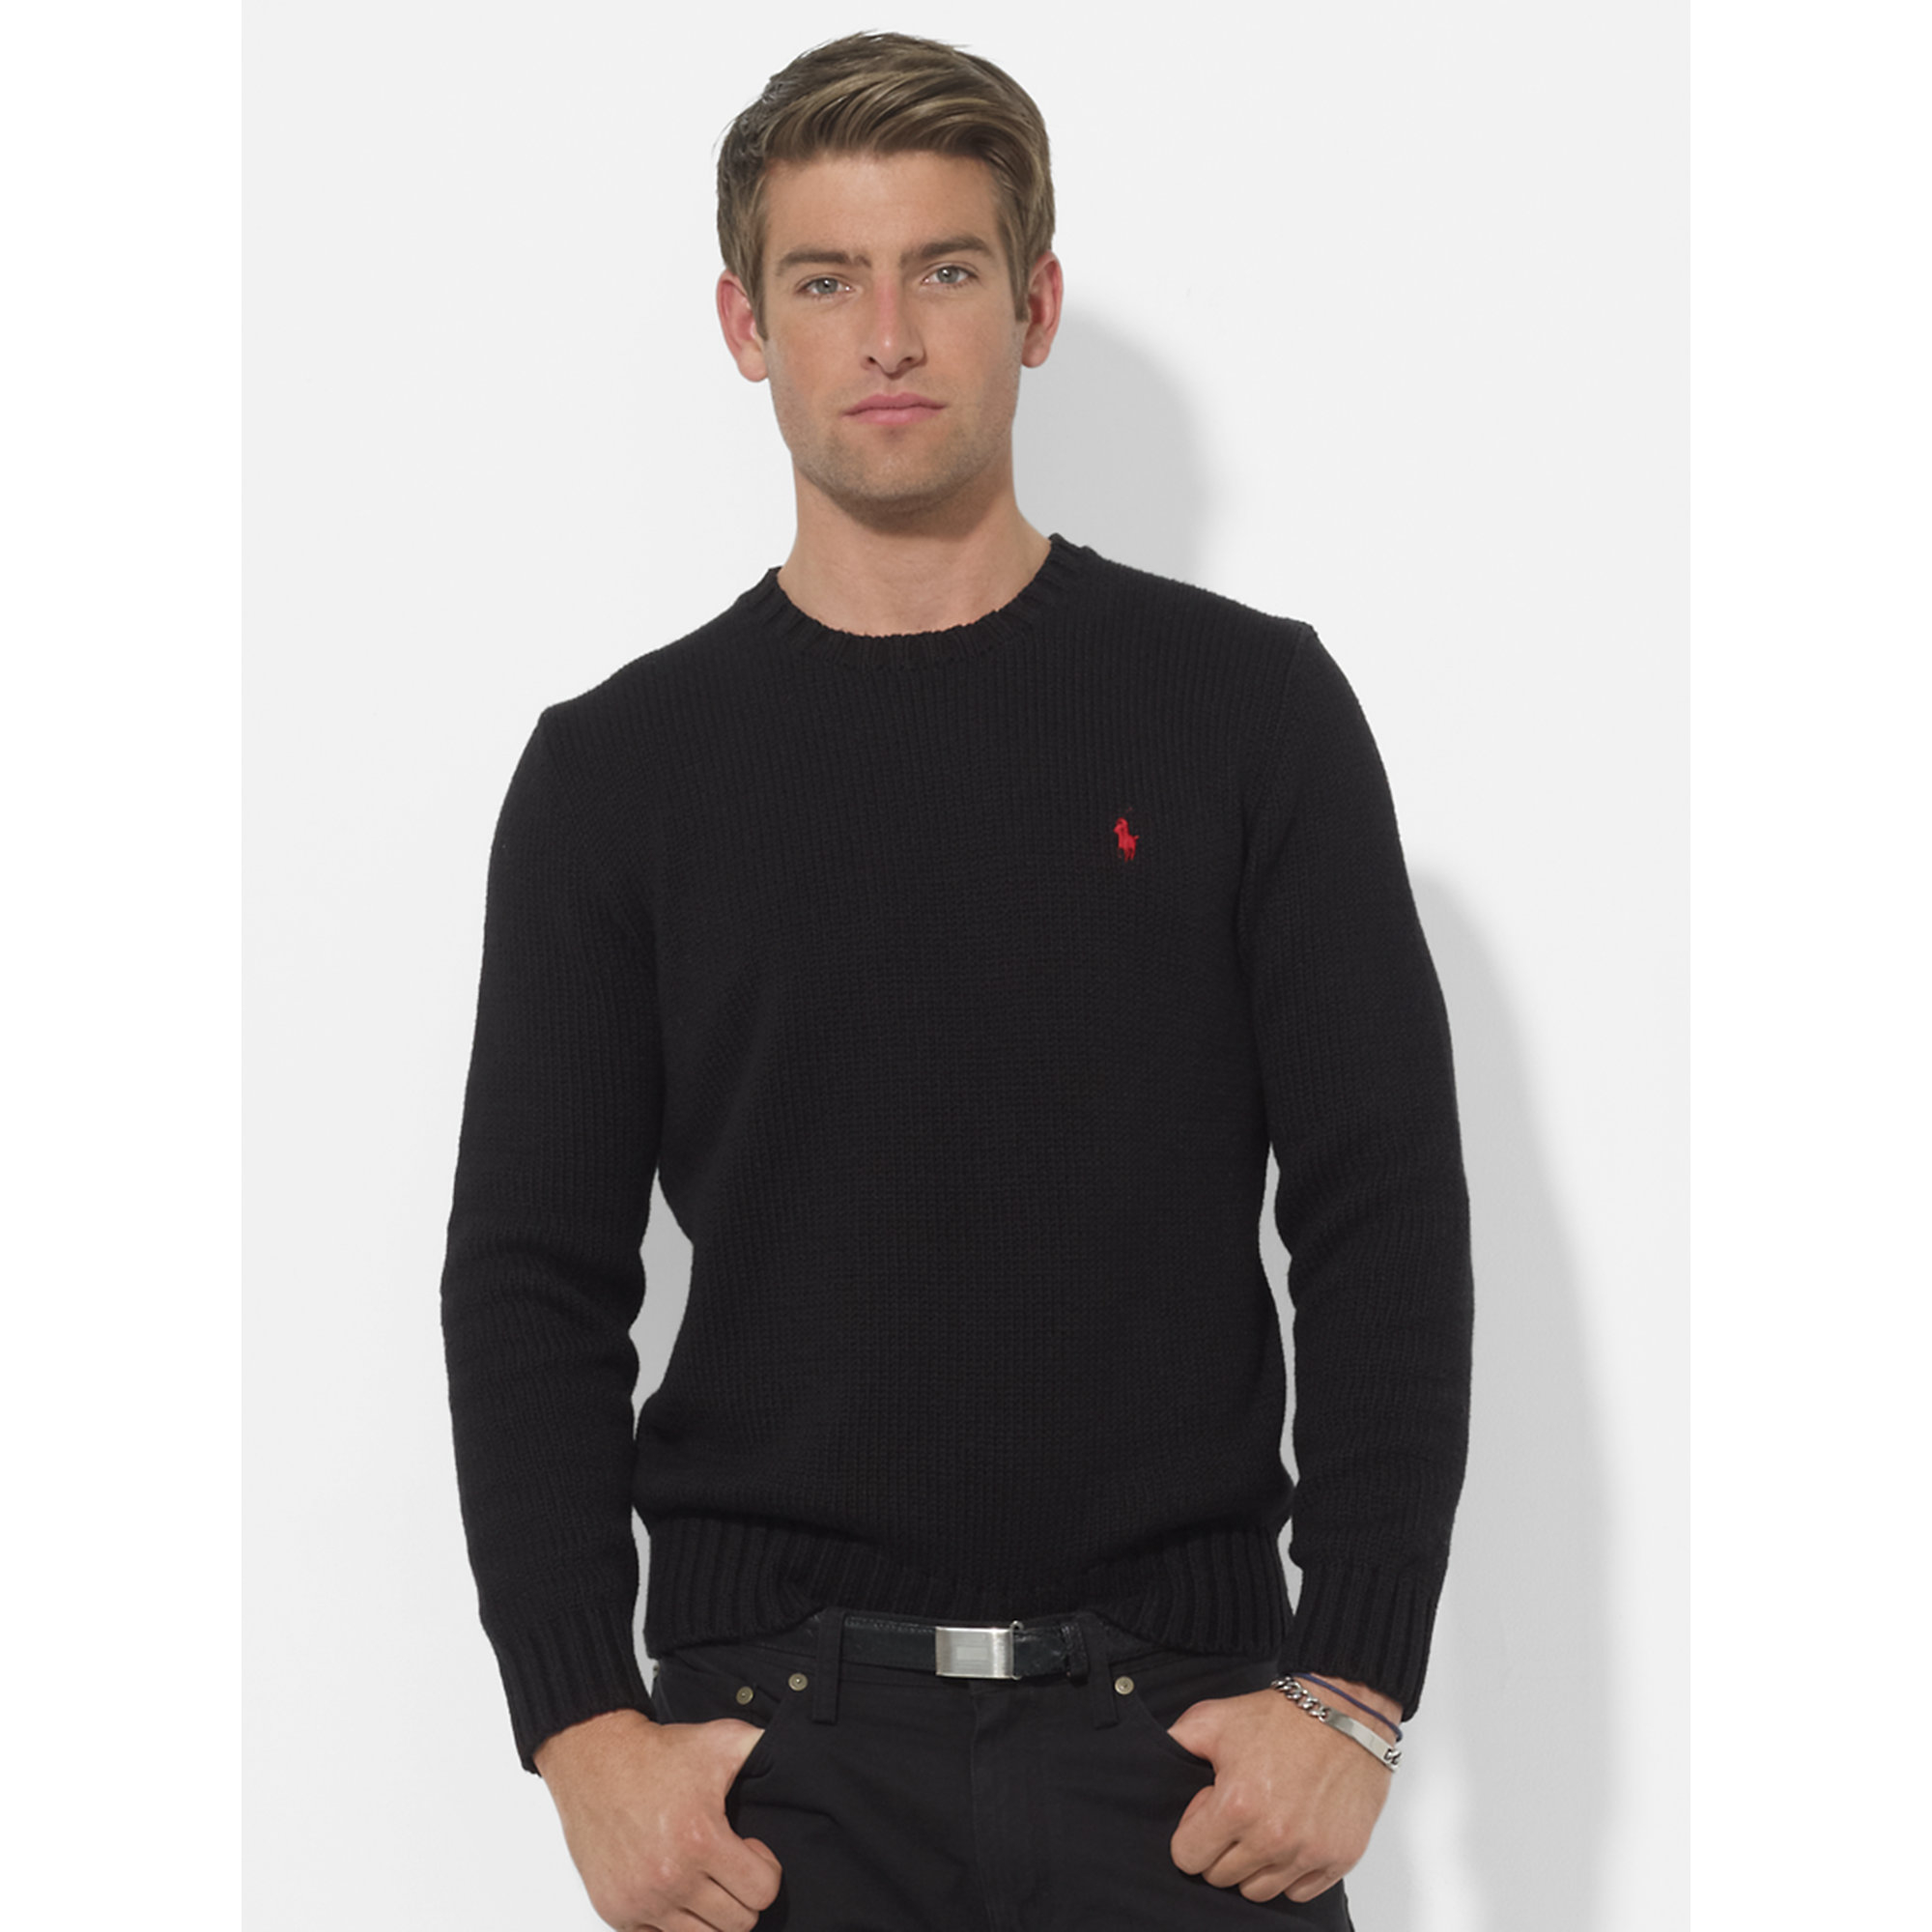 d3bc1fc3852 Lyst - Polo Ralph Lauren Cotton Crewneck Sweater in Black for Men